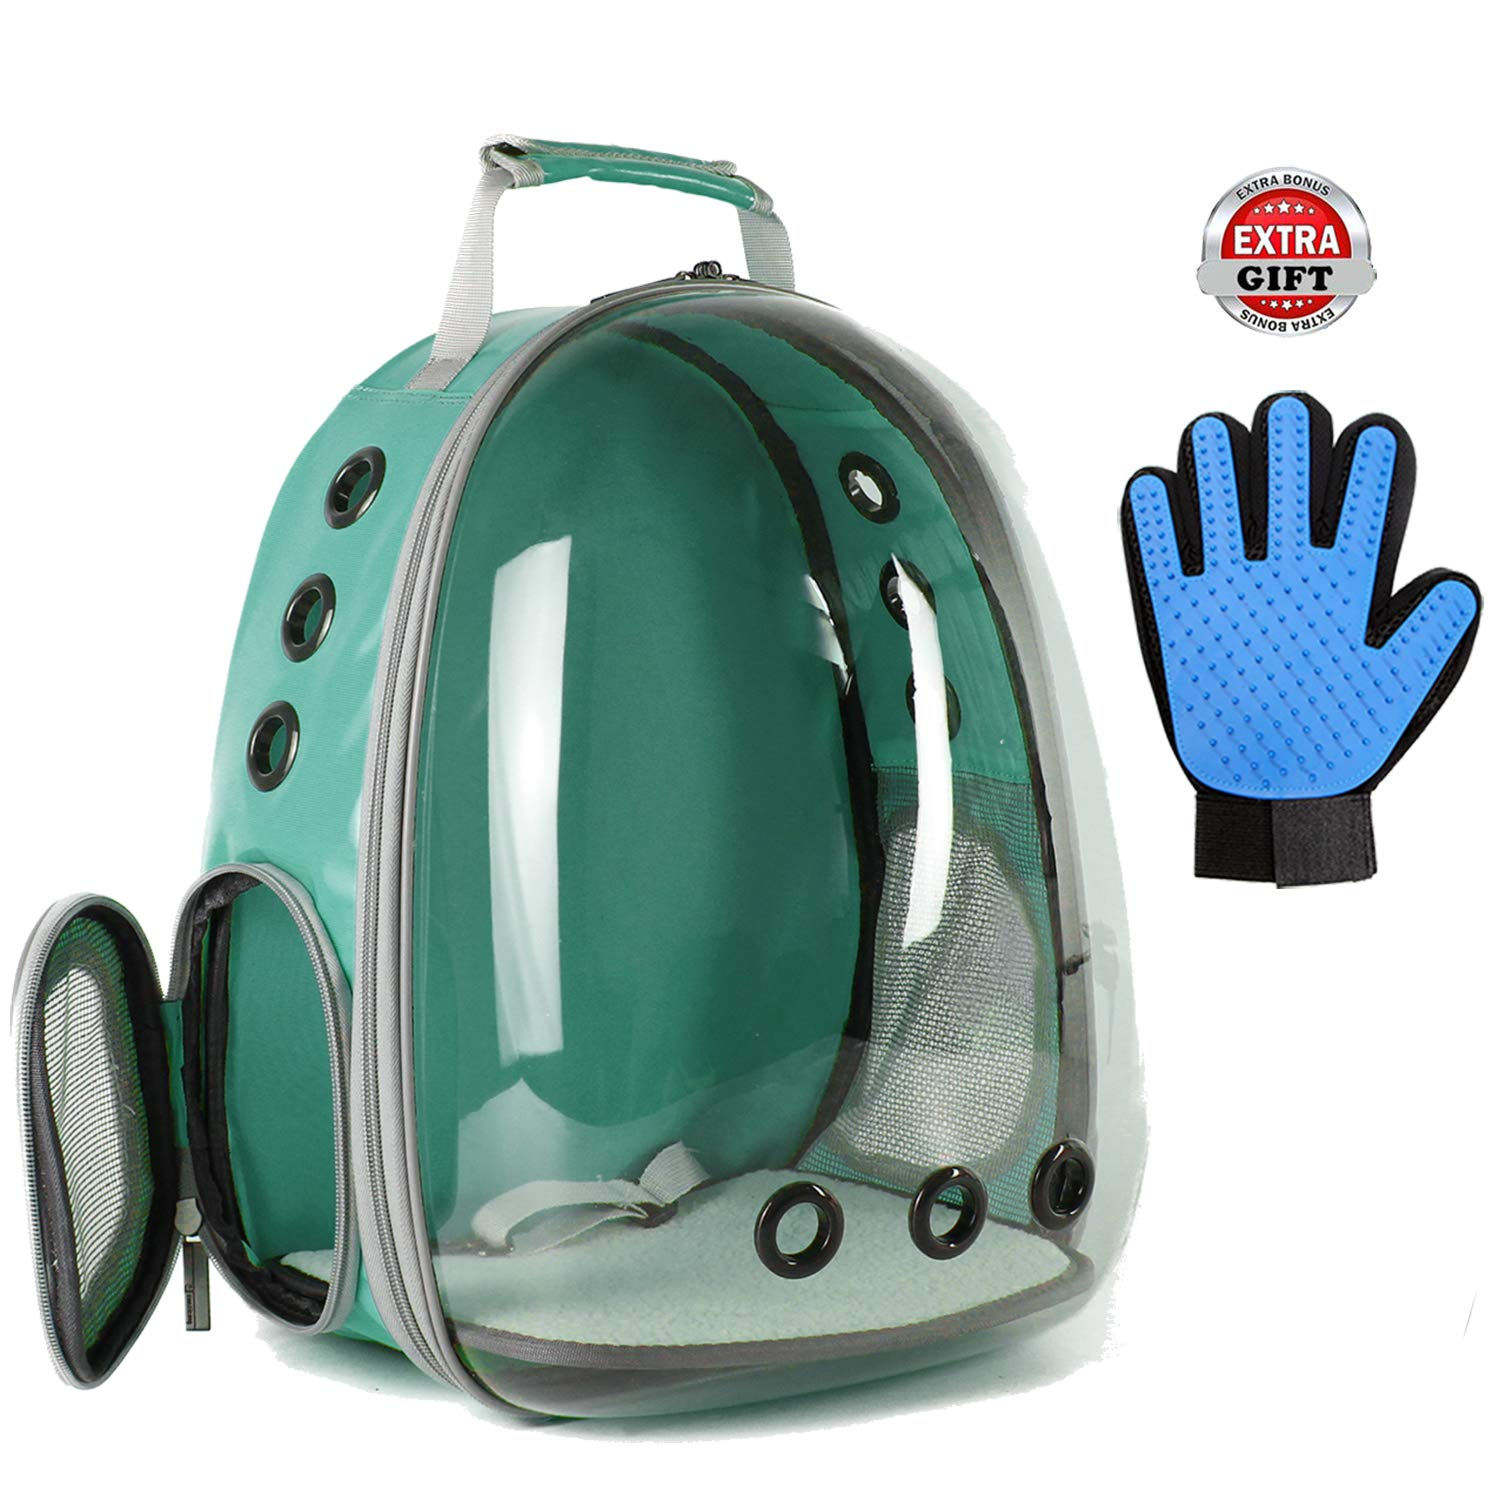 Hcupet Clear Cat Backpack, Airline Approved Space Capsule Transparent Waterproof Cat Carrying & Holding Outdoor Backpack - Green